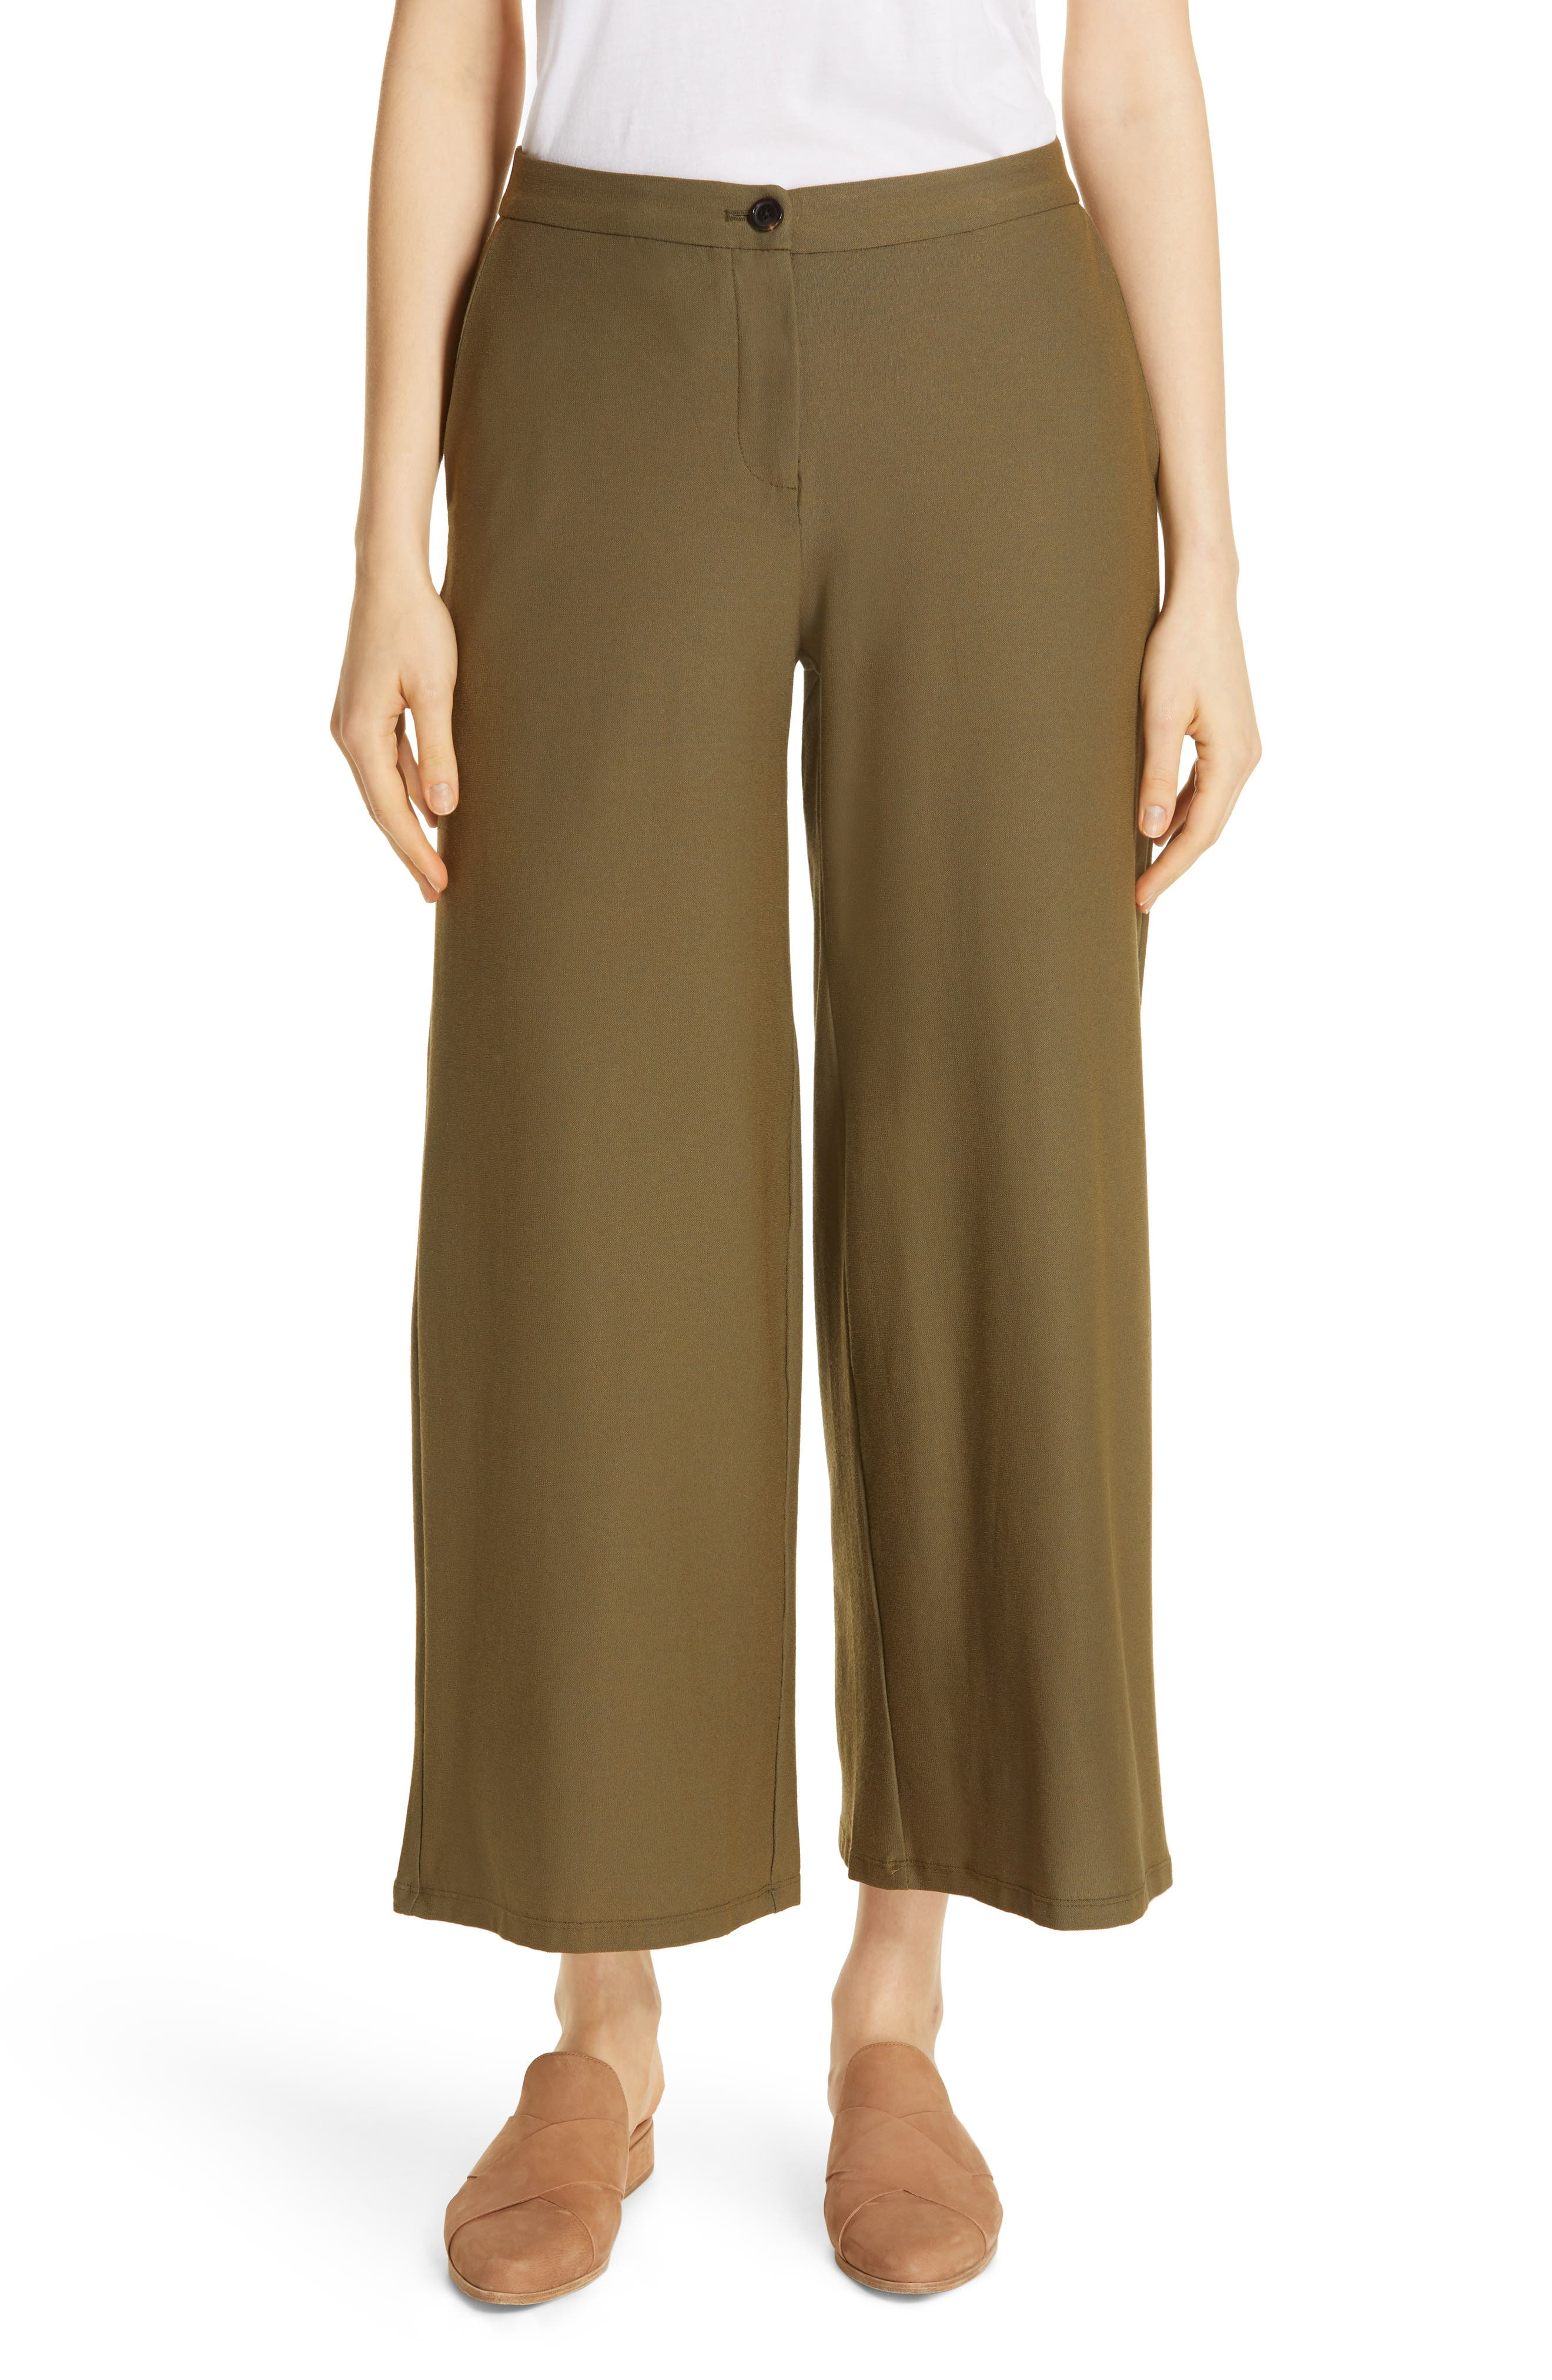 EILEEN FISHER, High Waist Ankle Pants, Main thumbnail 1, color, OLIVE